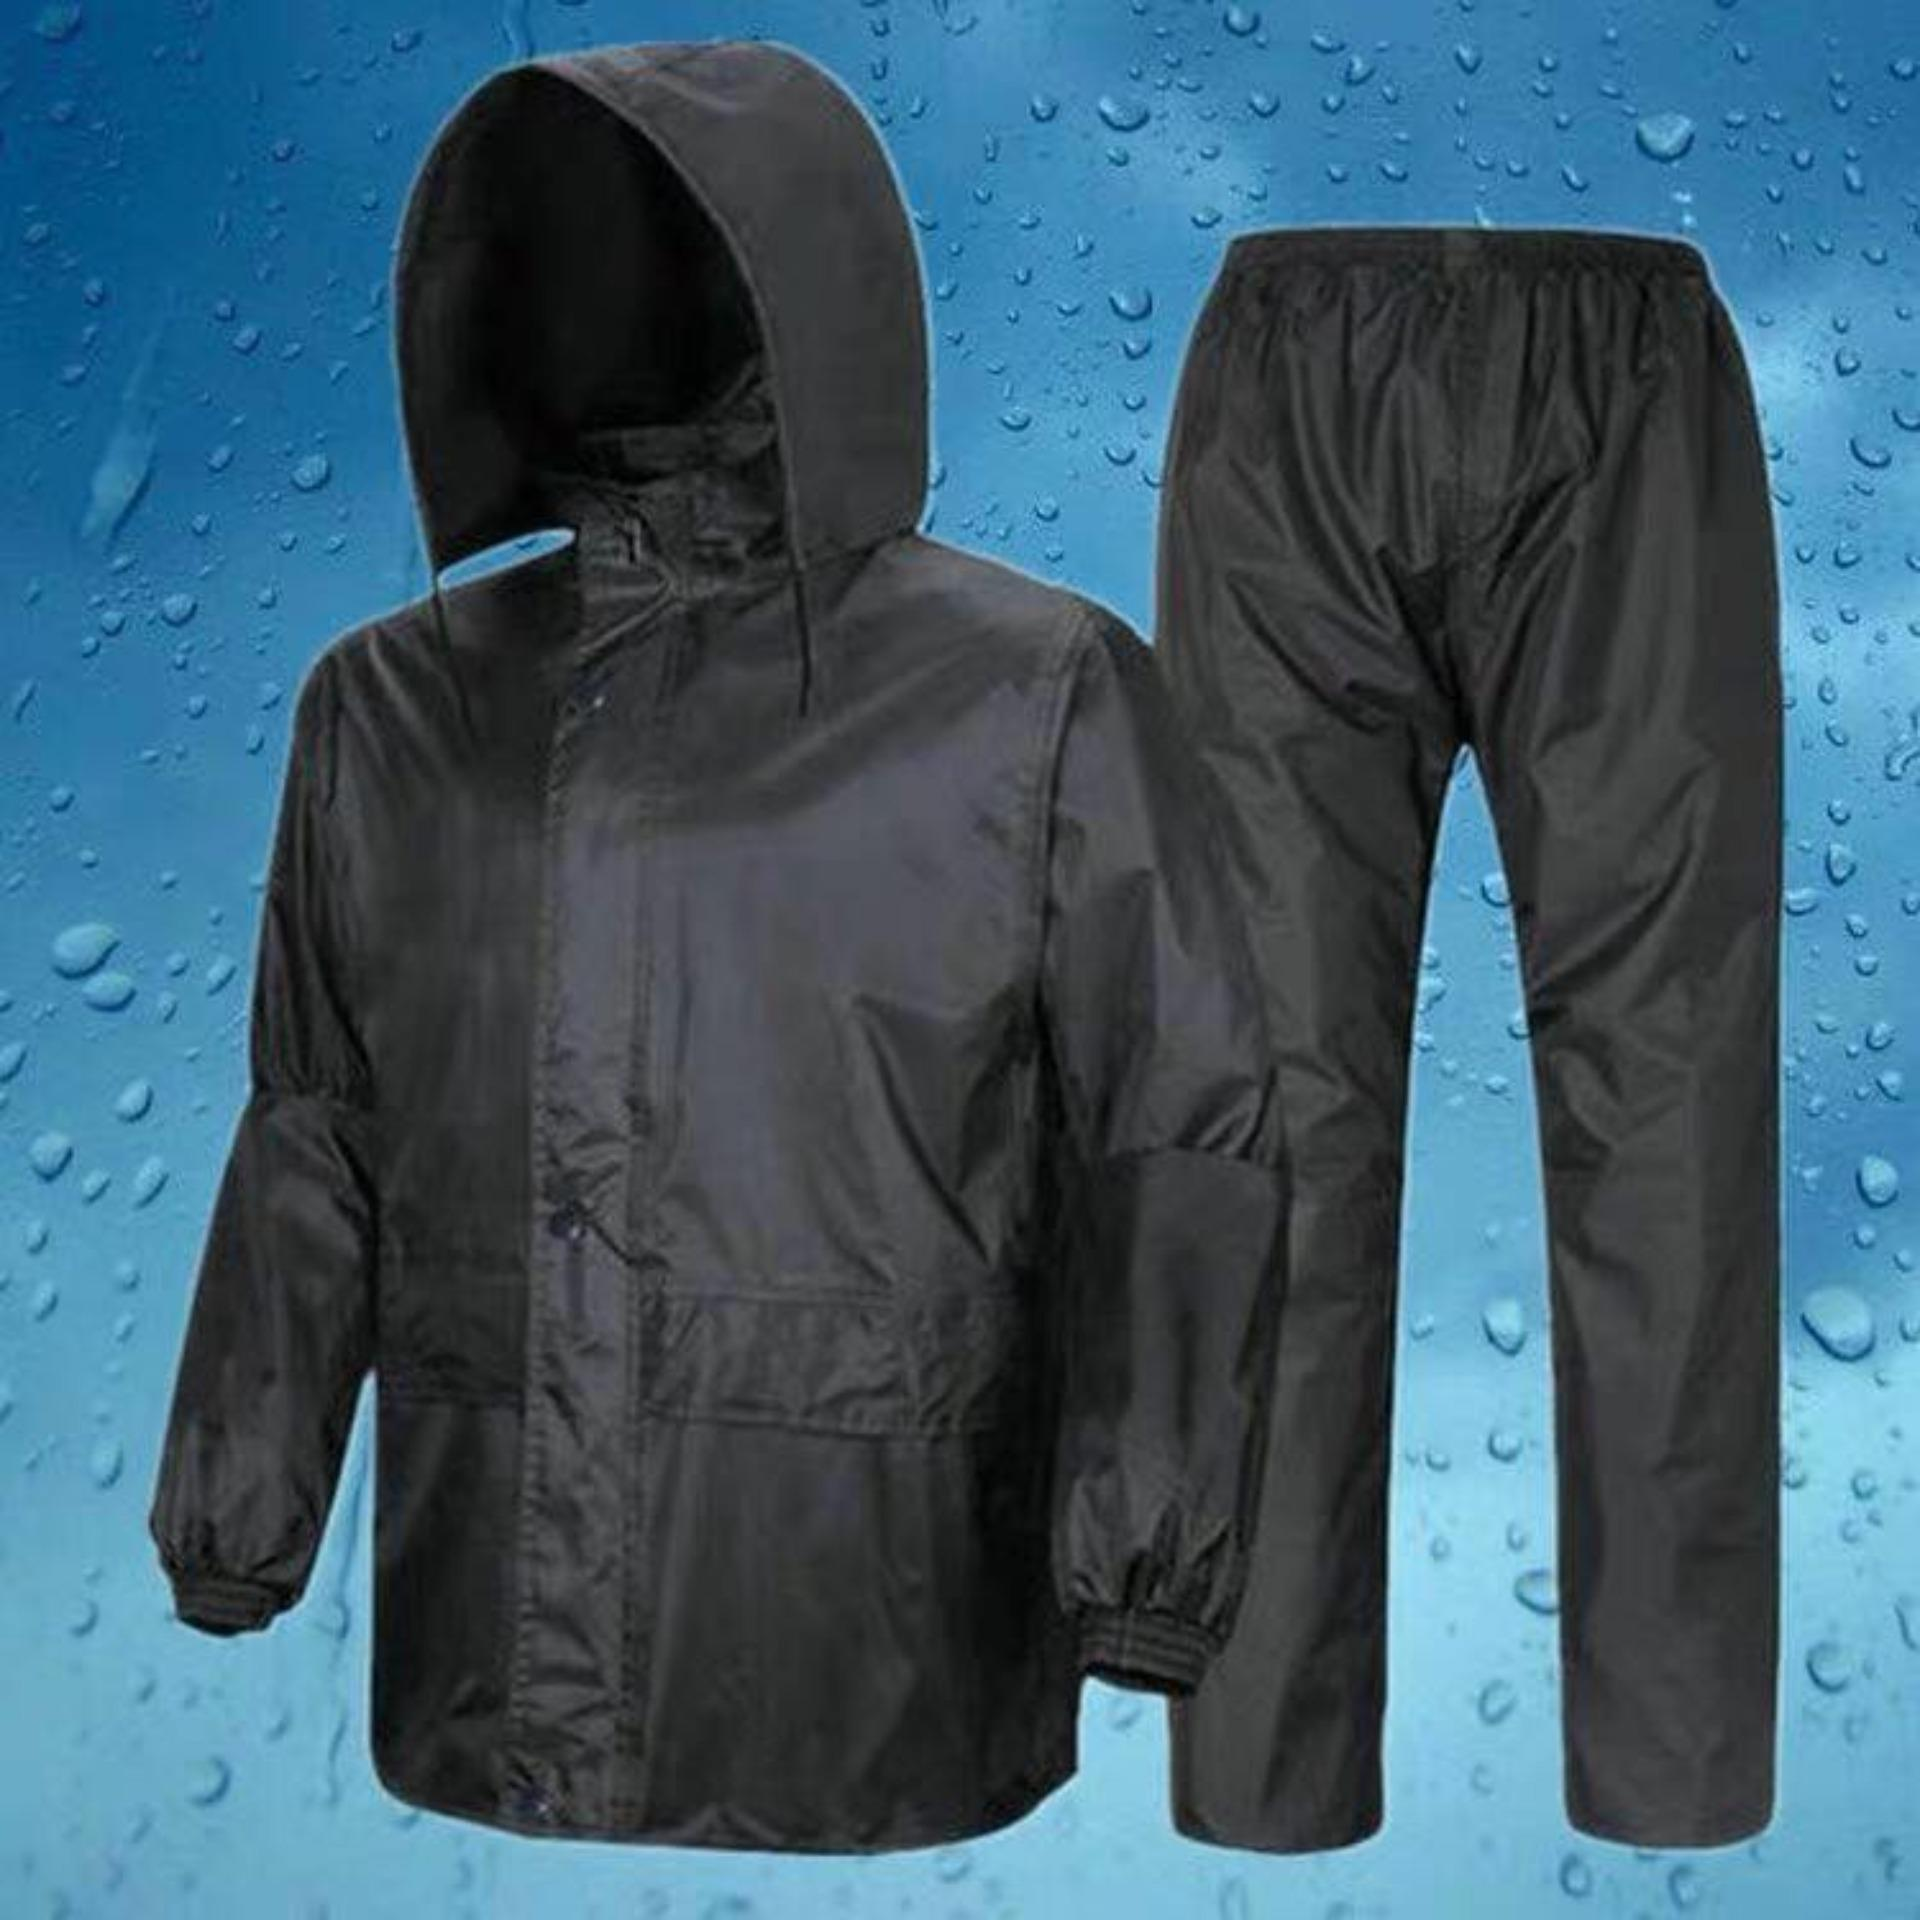 7a9014380 Motorcycle Raincoat. 860 items found in Rainwear. active demand Raincoat